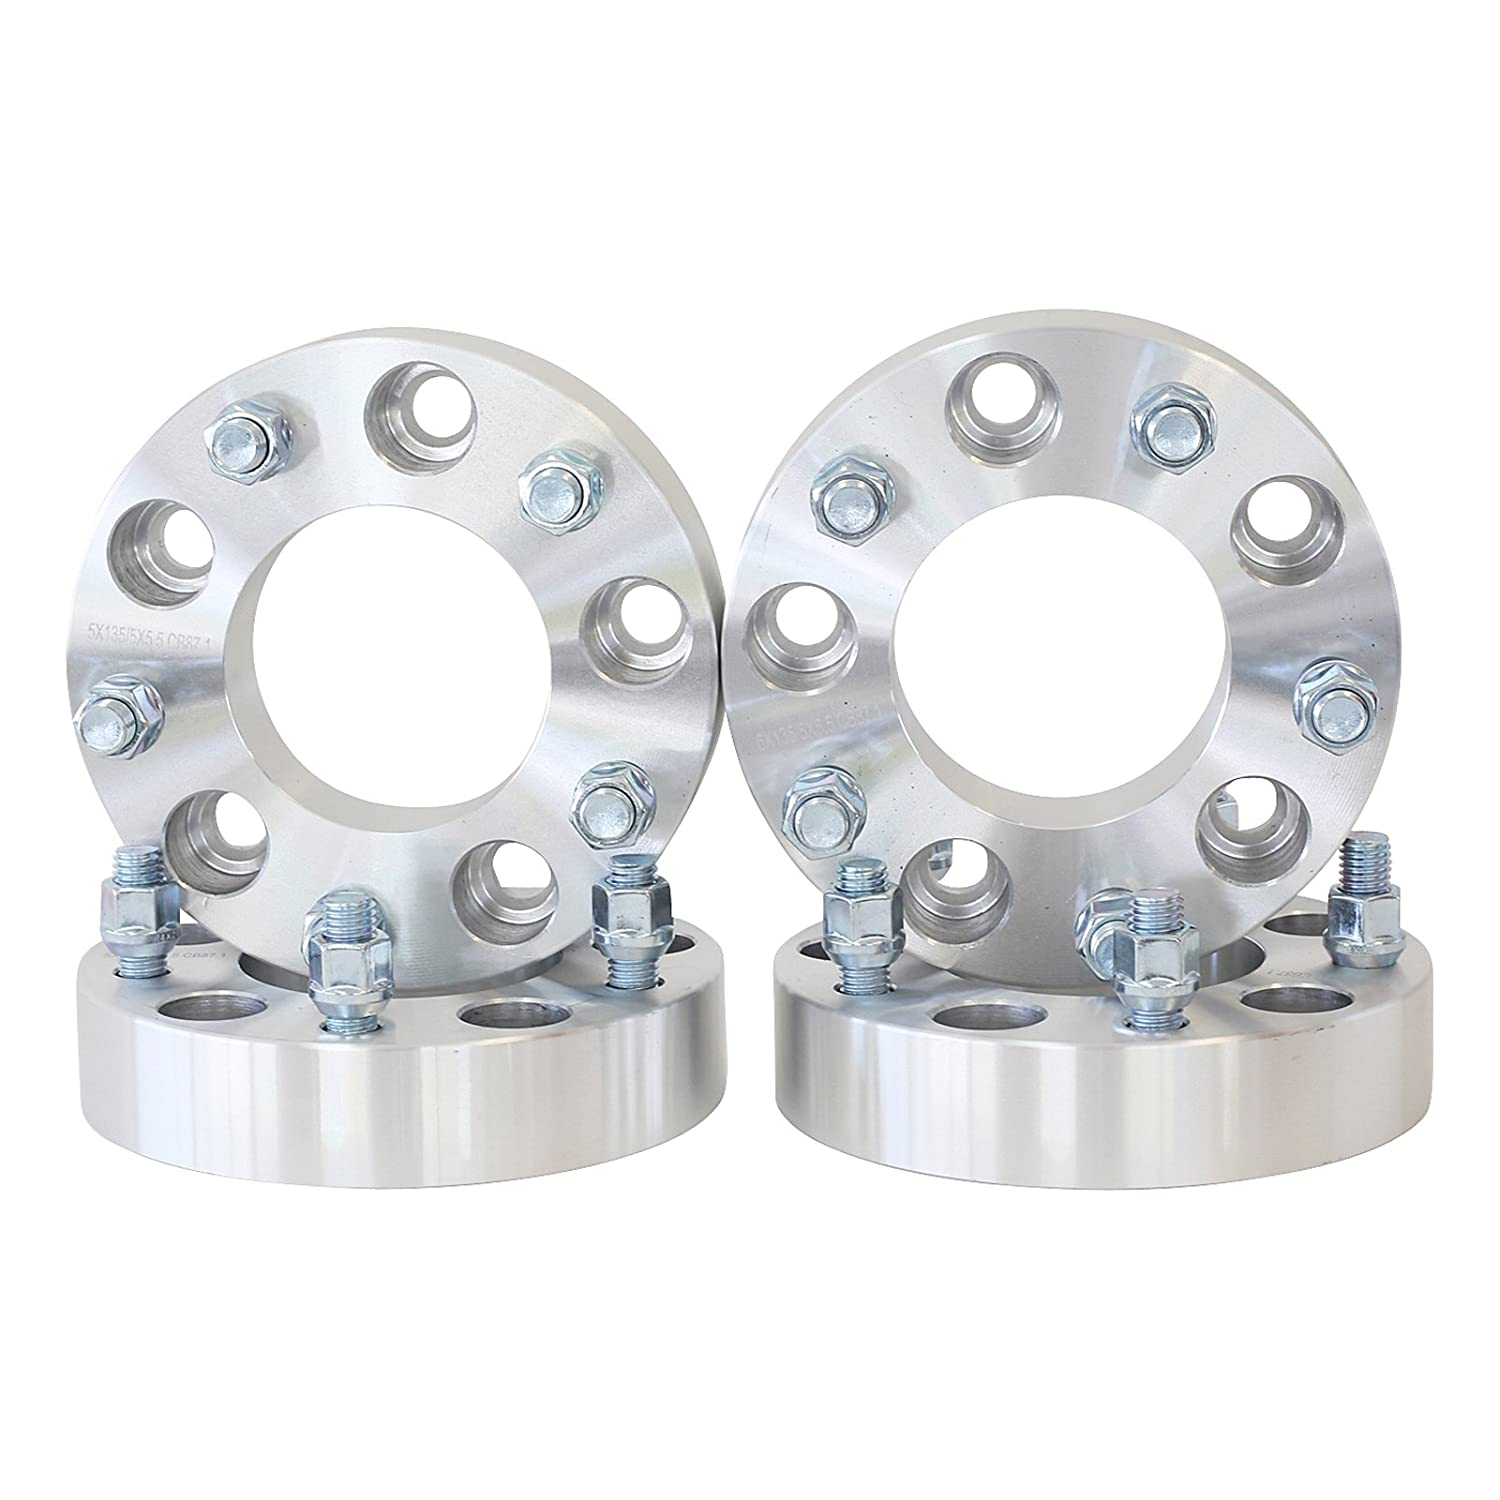 4 QTY Wheel Spacers Adapters 3' (1.5 inch Per Side) fits all 6x4.5 (6x114.3) vehicle to 6x4.5 wheel patterns with 1/2 - 20 threads Durango Dakota Wheel Spacer SmartPartsCo.com